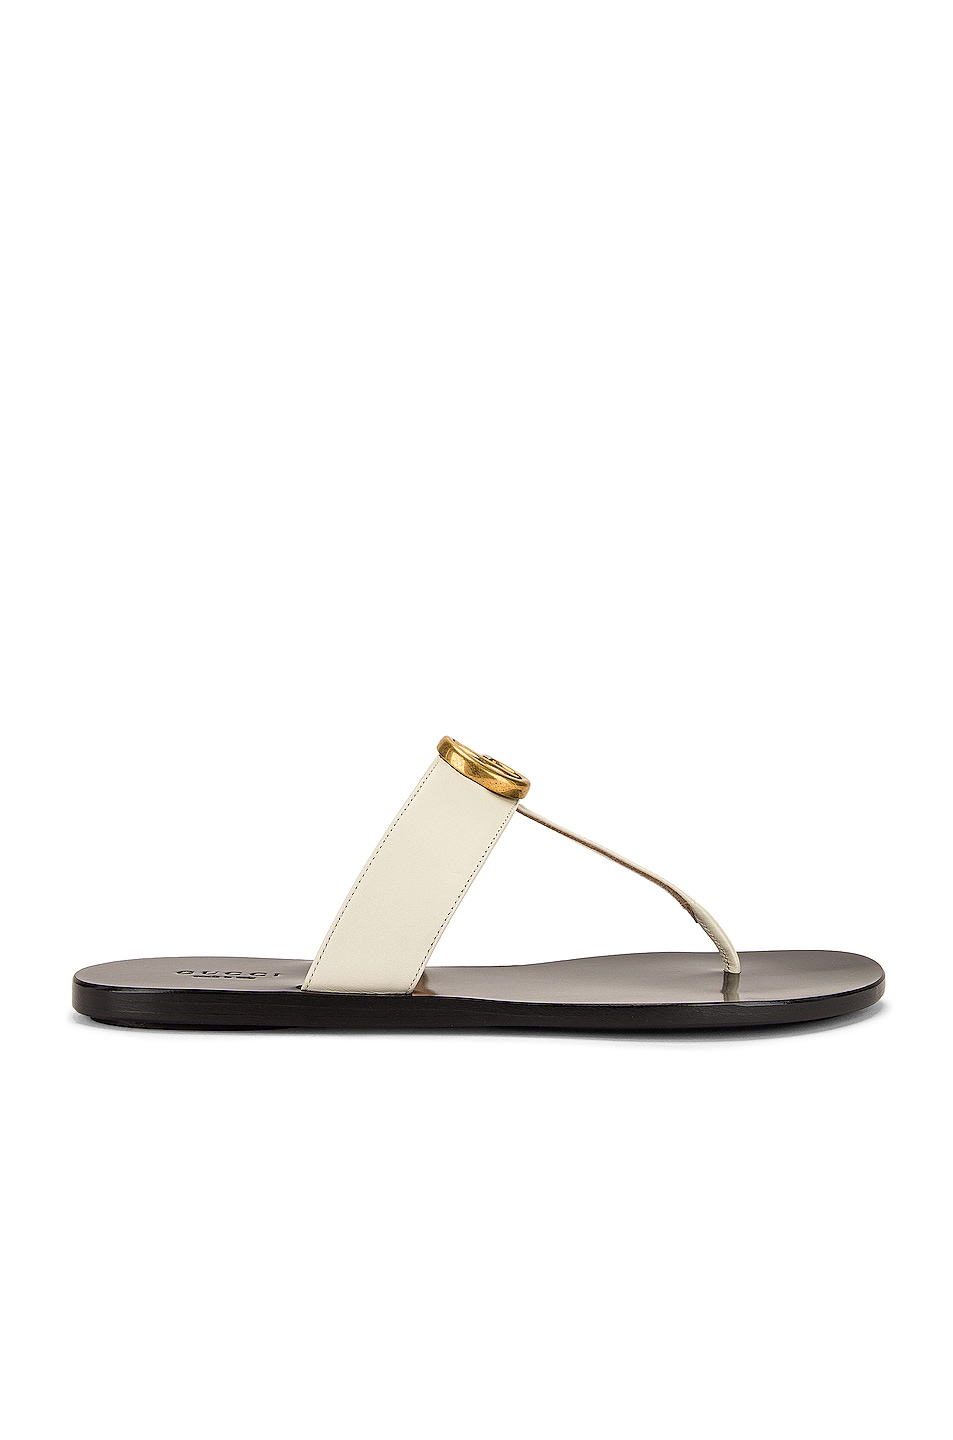 Image 2 of Gucci Marmont Thong Sandals in Mystic White